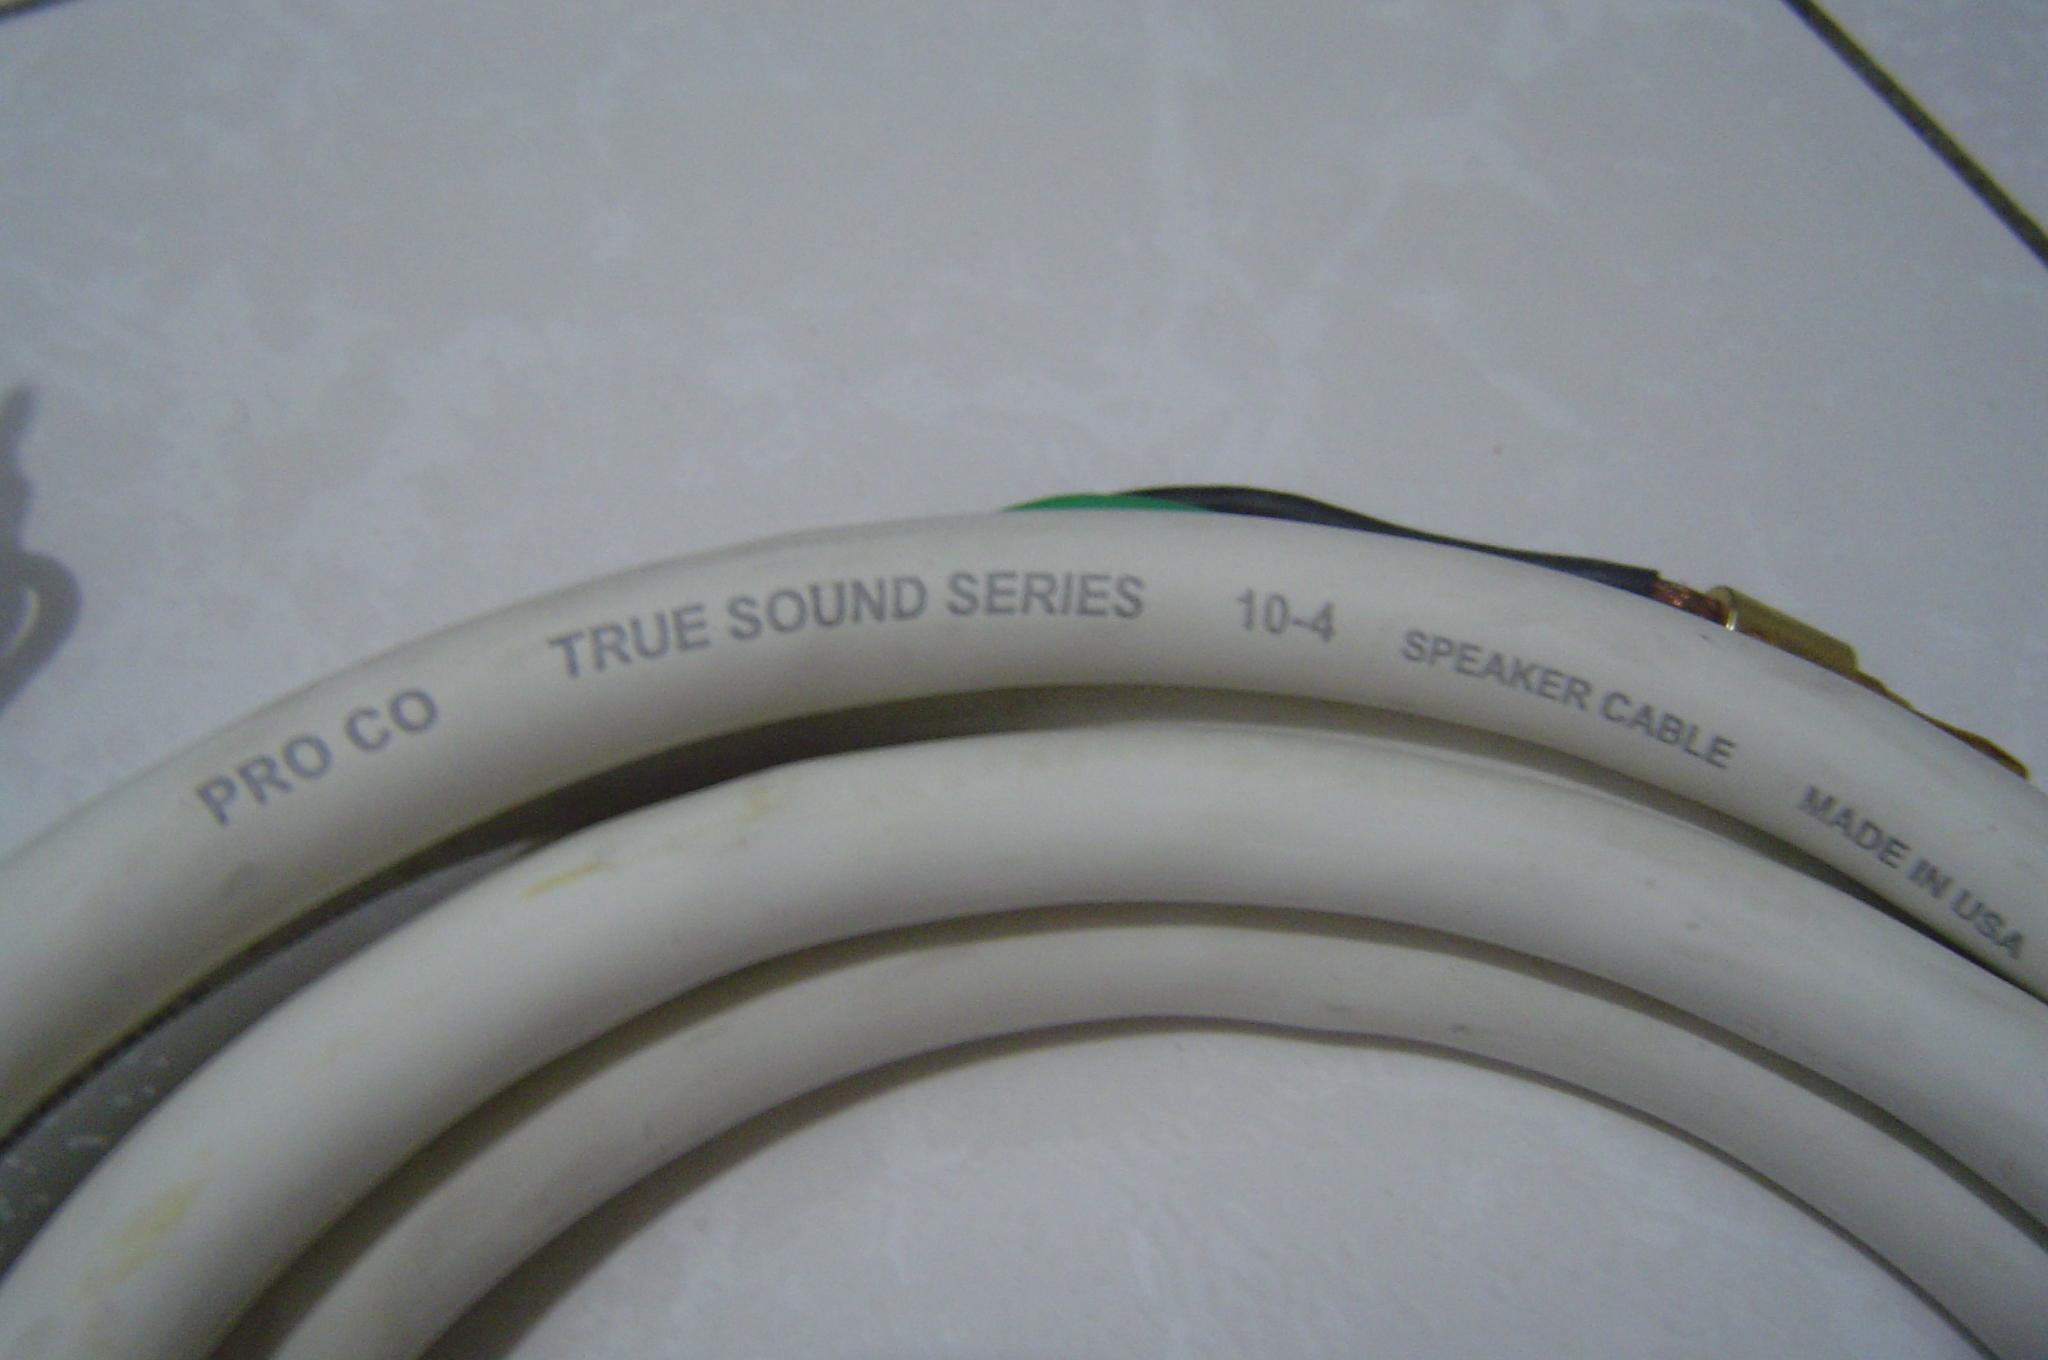 PRO CO TRUE SOUND SERISE 10-4